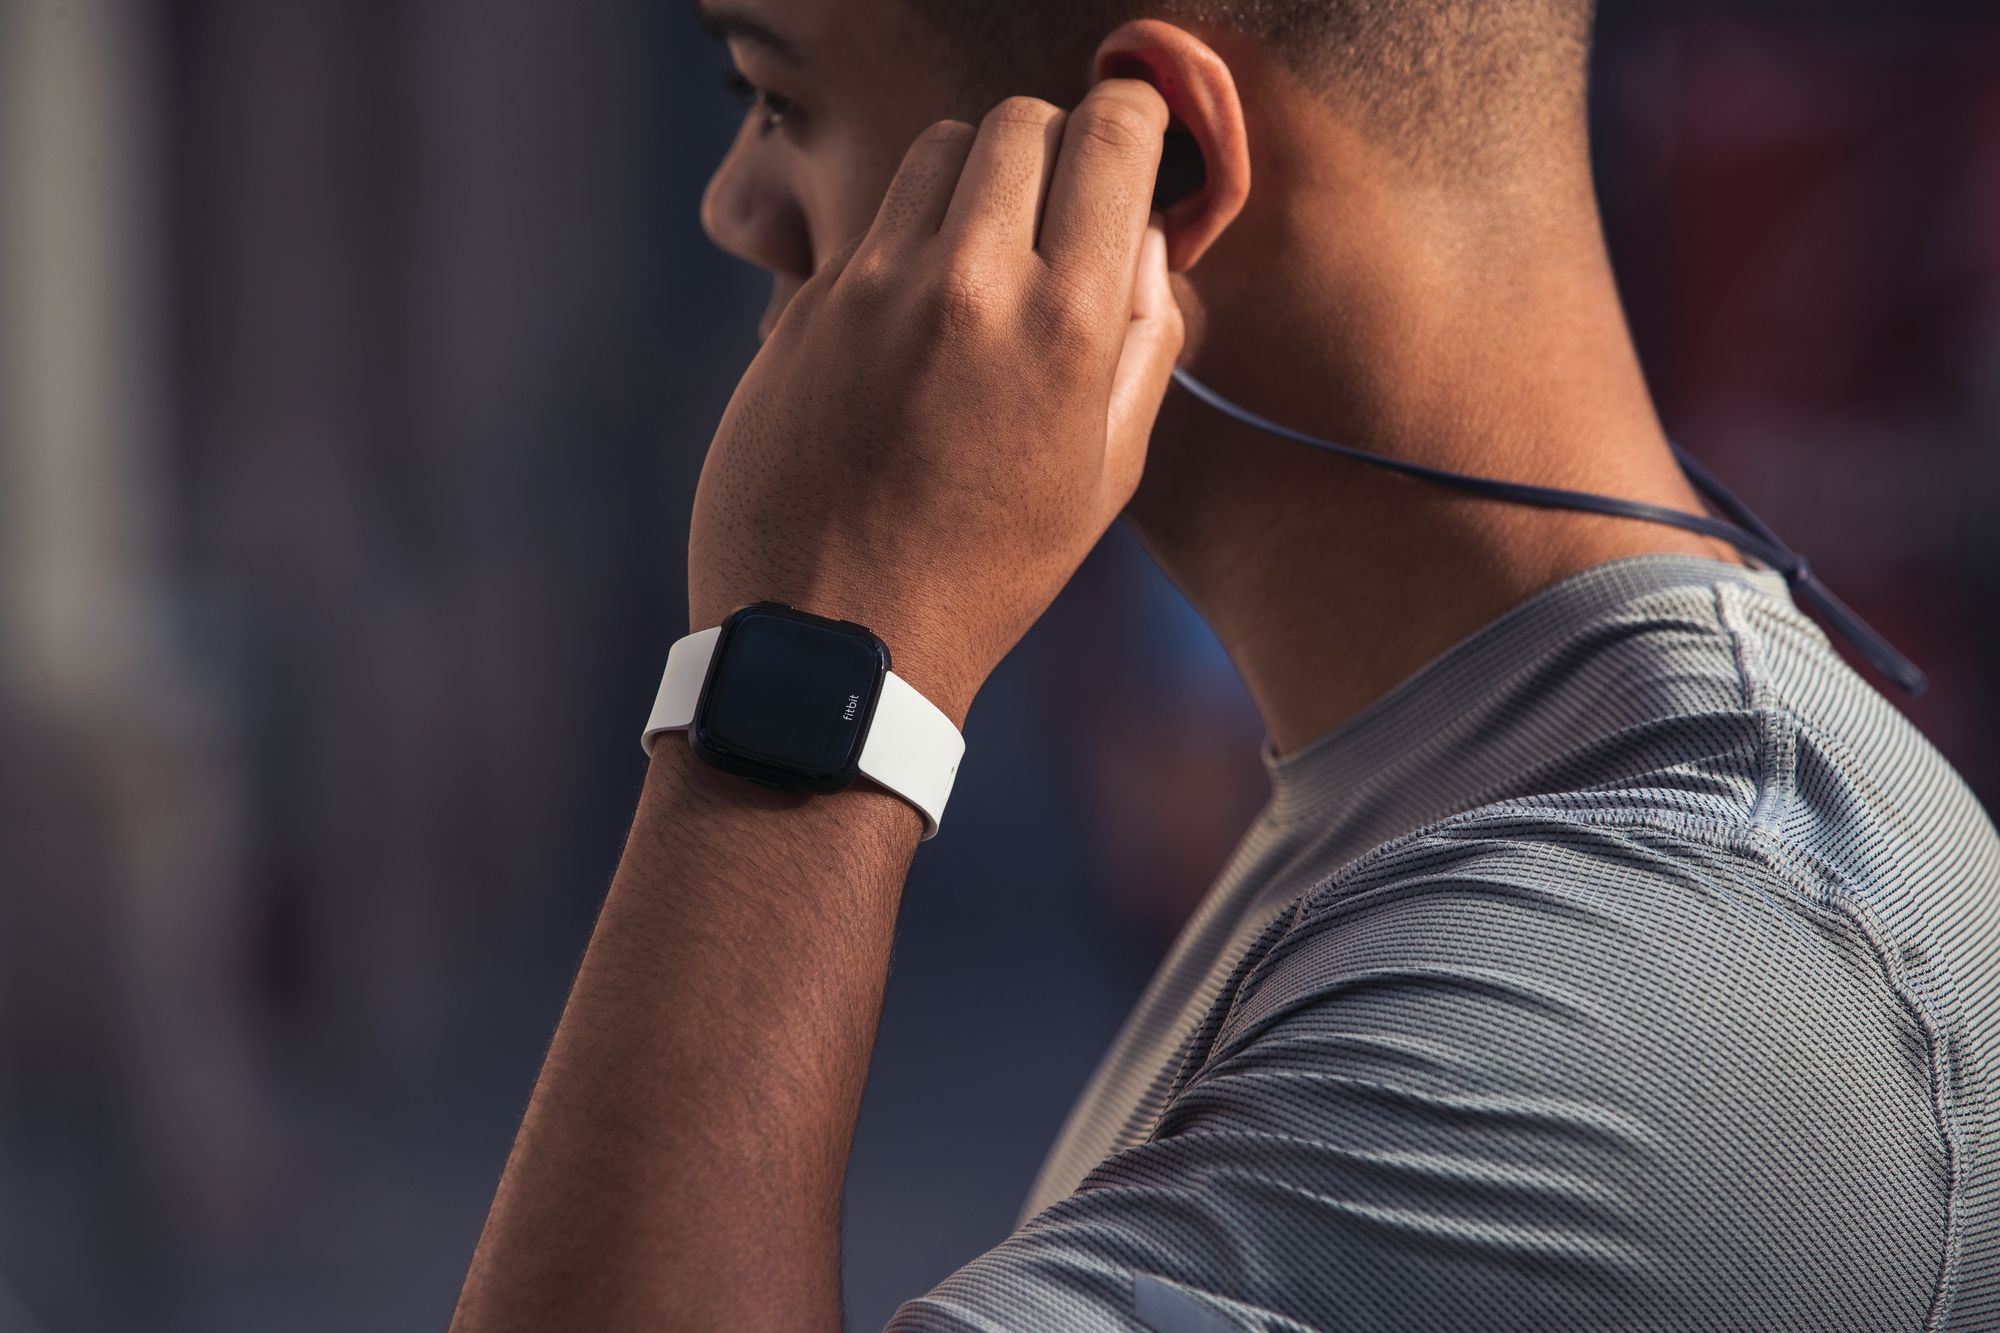 Fitbit Versa Review: The Smartwatch You'll Actually Want To Wear